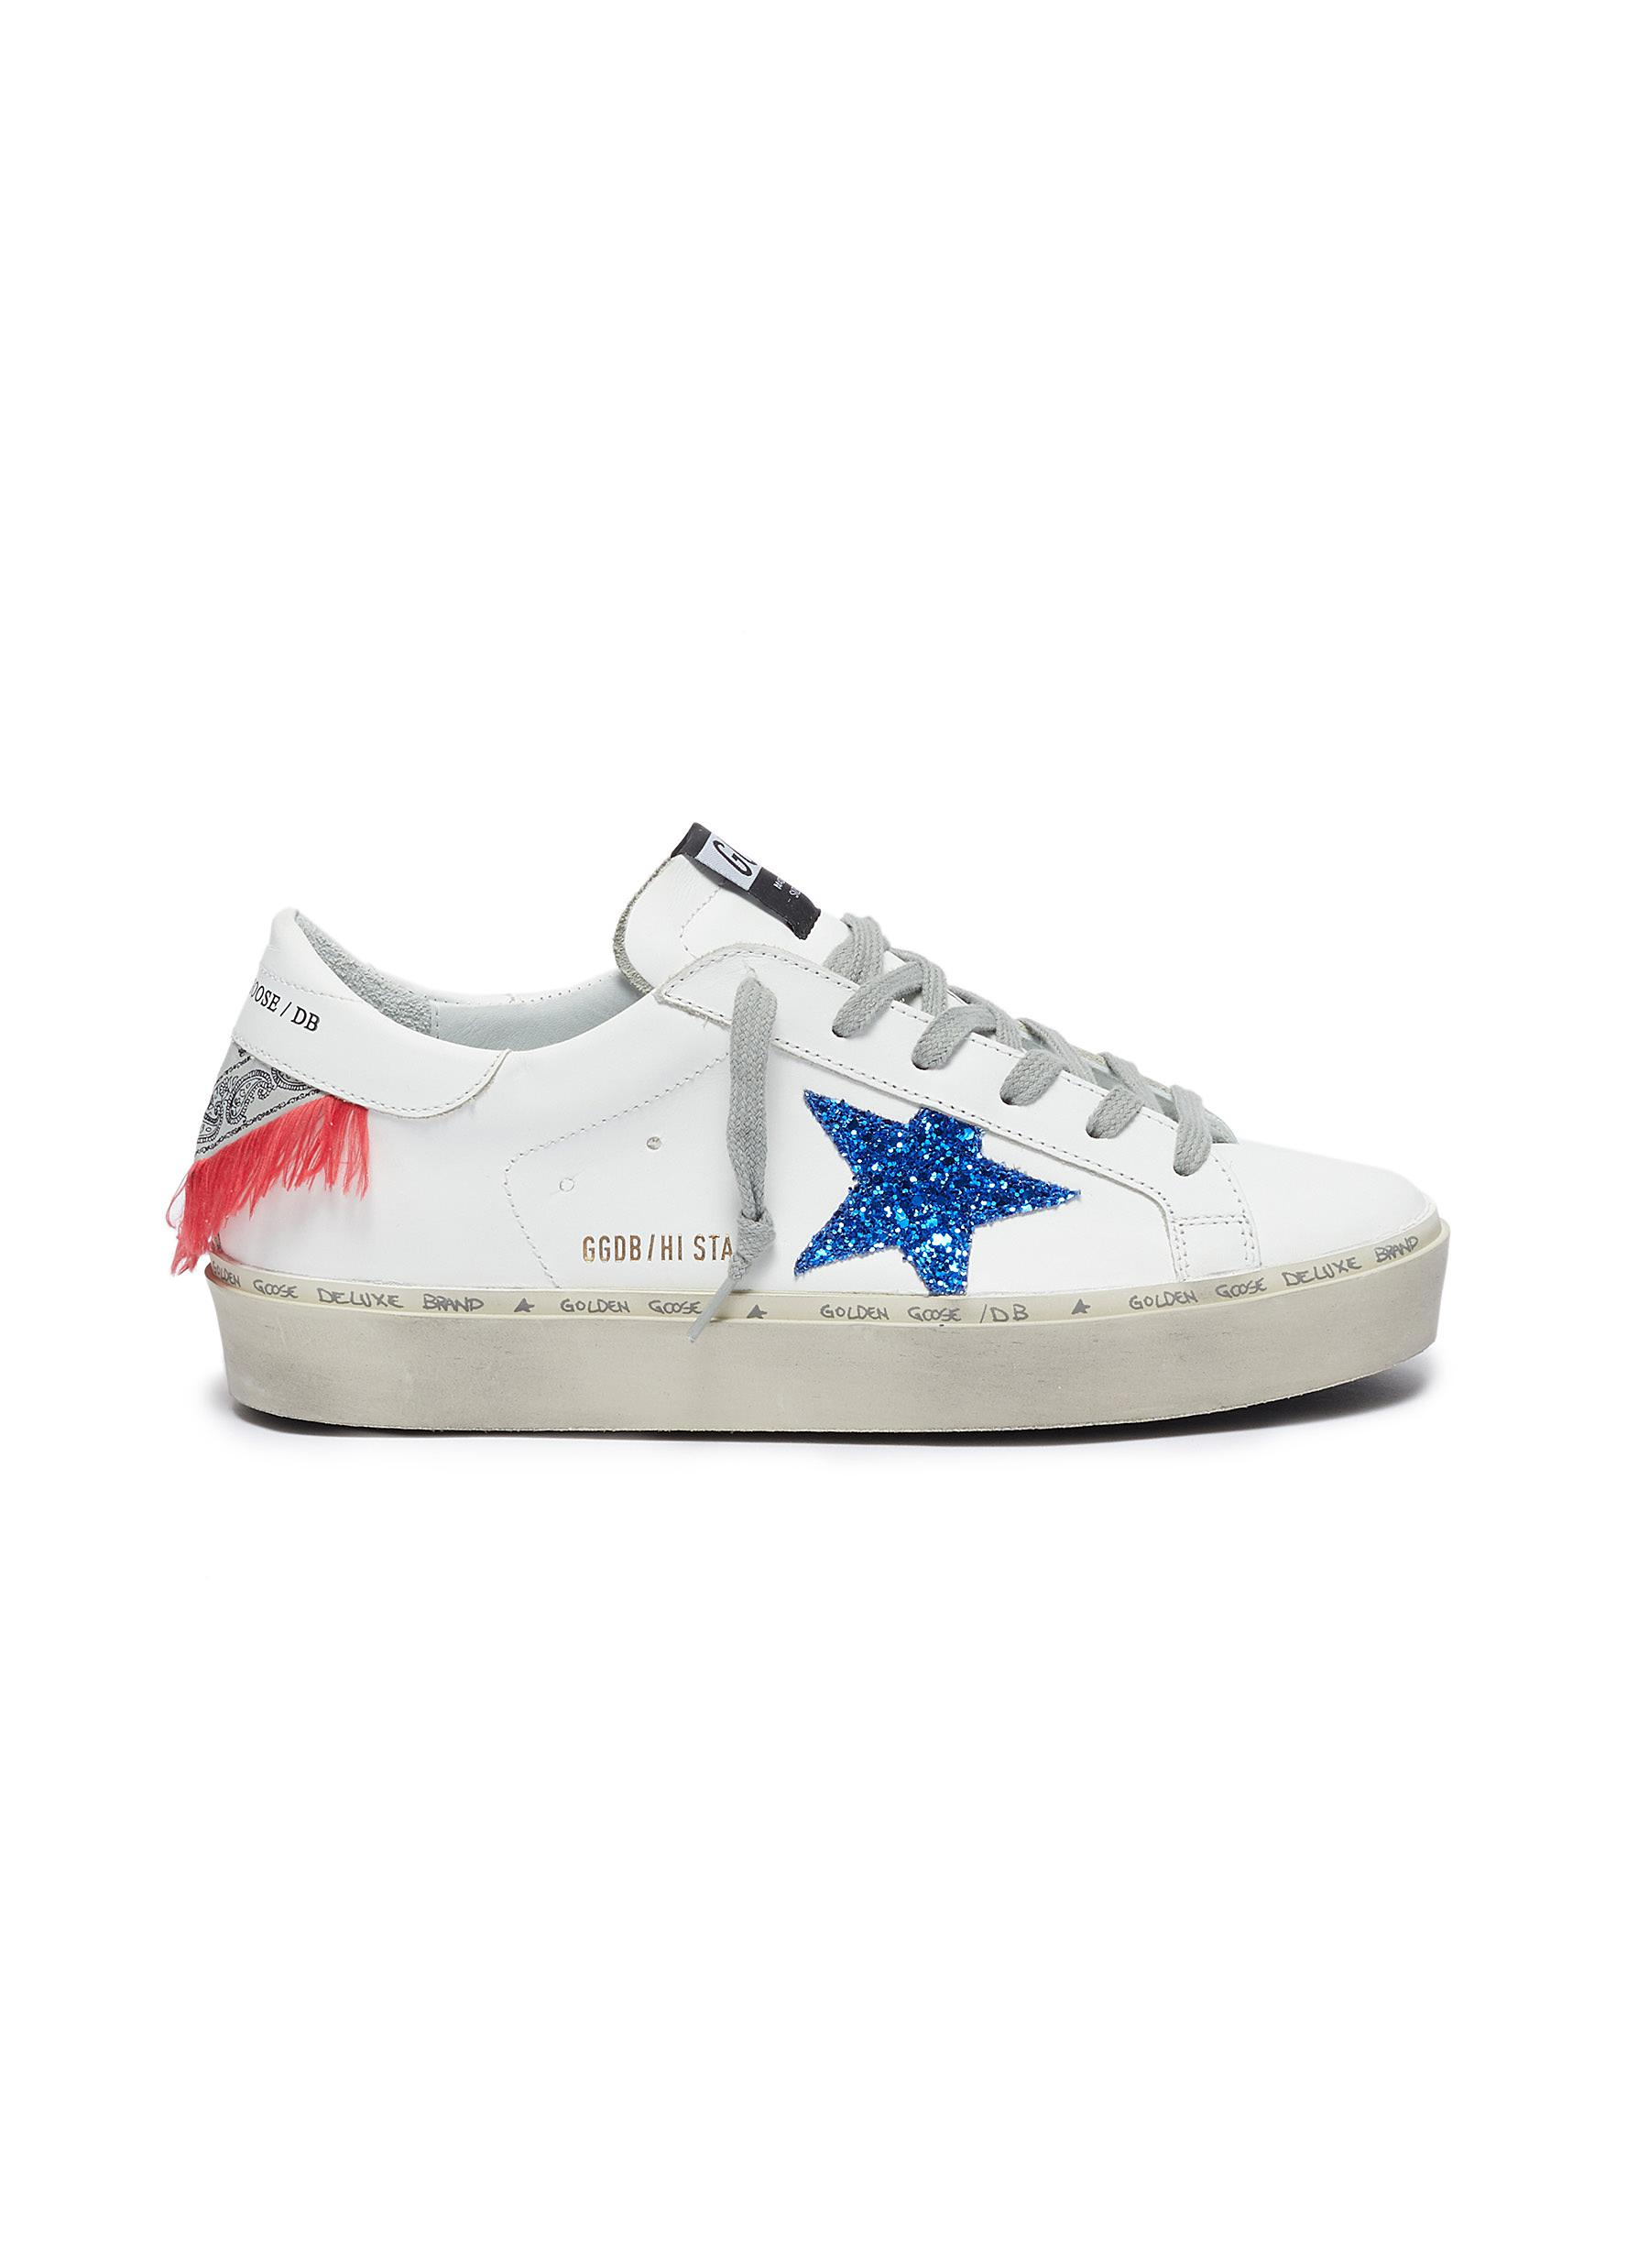 Frayed bandana counter sneakers by Golden Goose